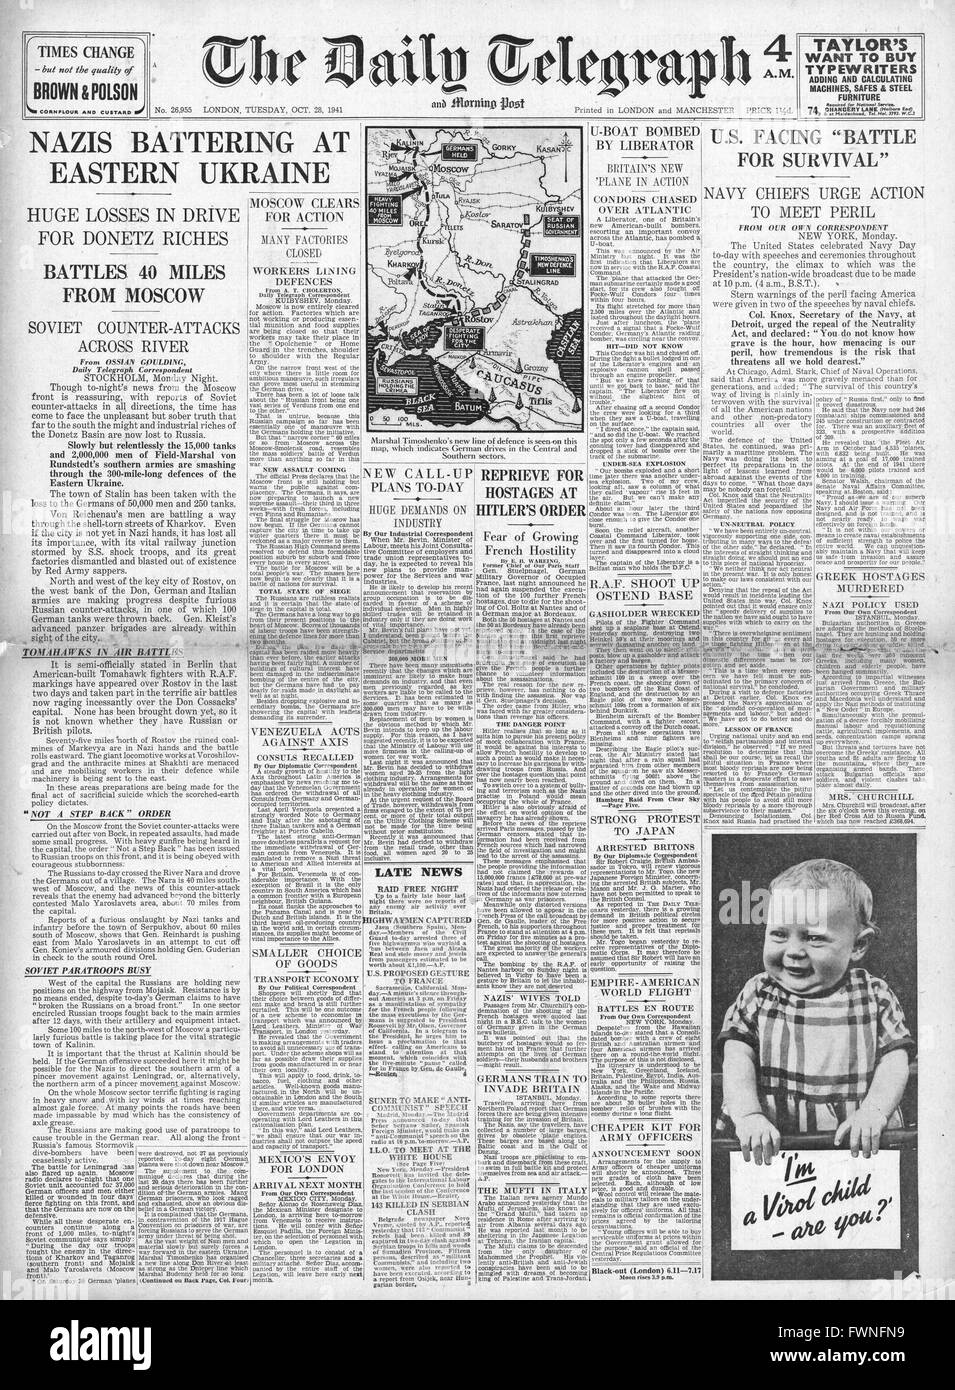 1941 front page  Daily Telegraph German Army attacks in Eastern Ukraine, Battle for Moscow and U.S. Navy secretary Stock Photo